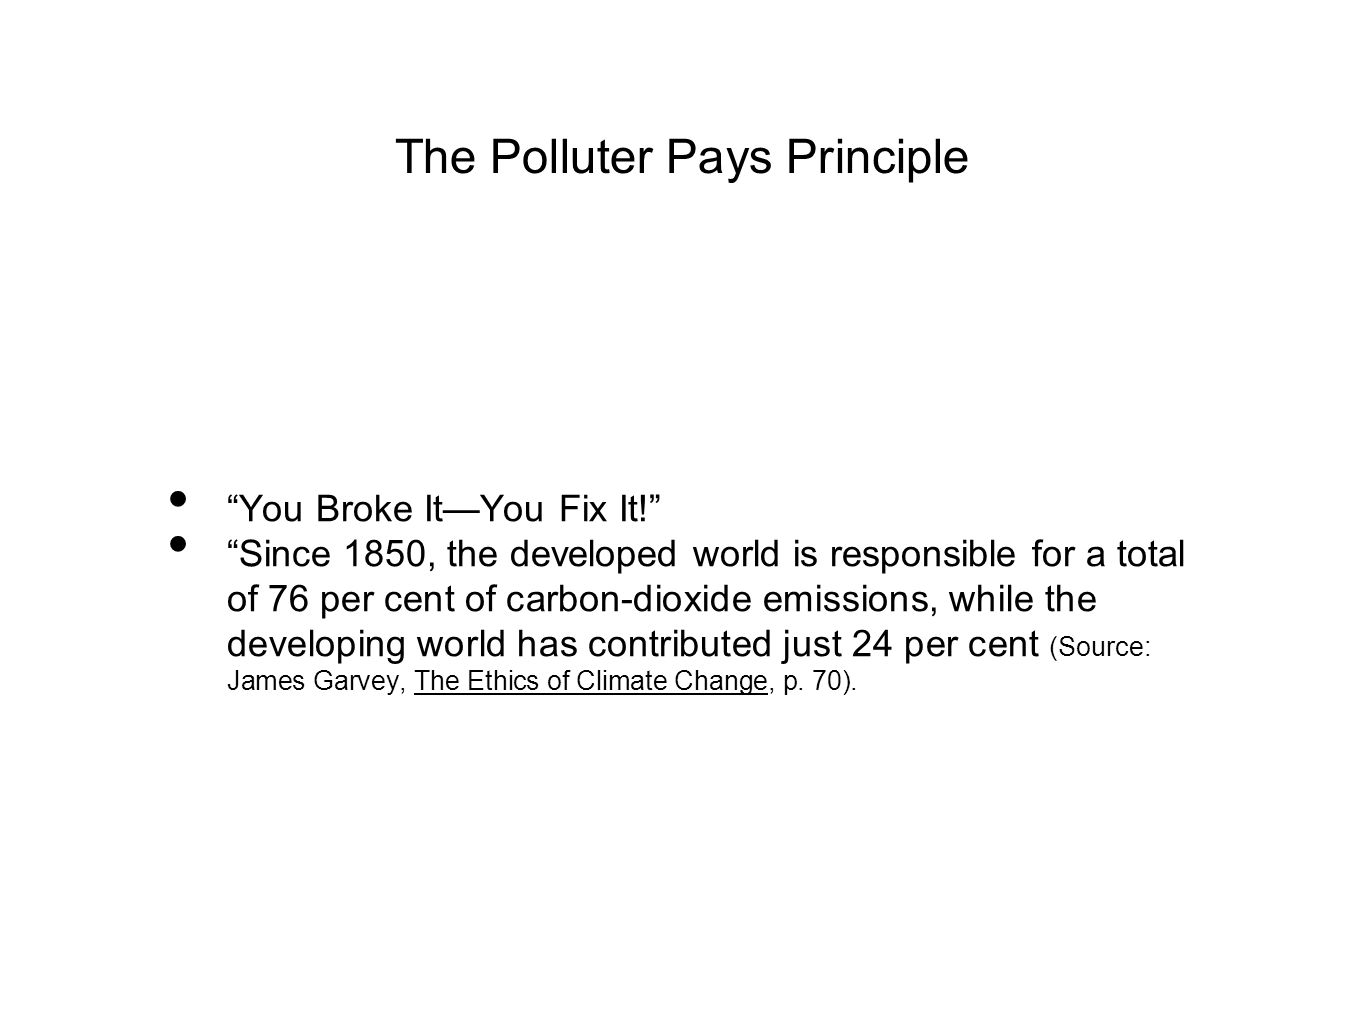 The Polluter Pays Principle You Broke It—You Fix It! Since 1850, the developed world is responsible for a total of 76 per cent of carbon-dioxide emissions, while the developing world has contributed just 24 per cent (Source: James Garvey, The Ethics of Climate Change, p.